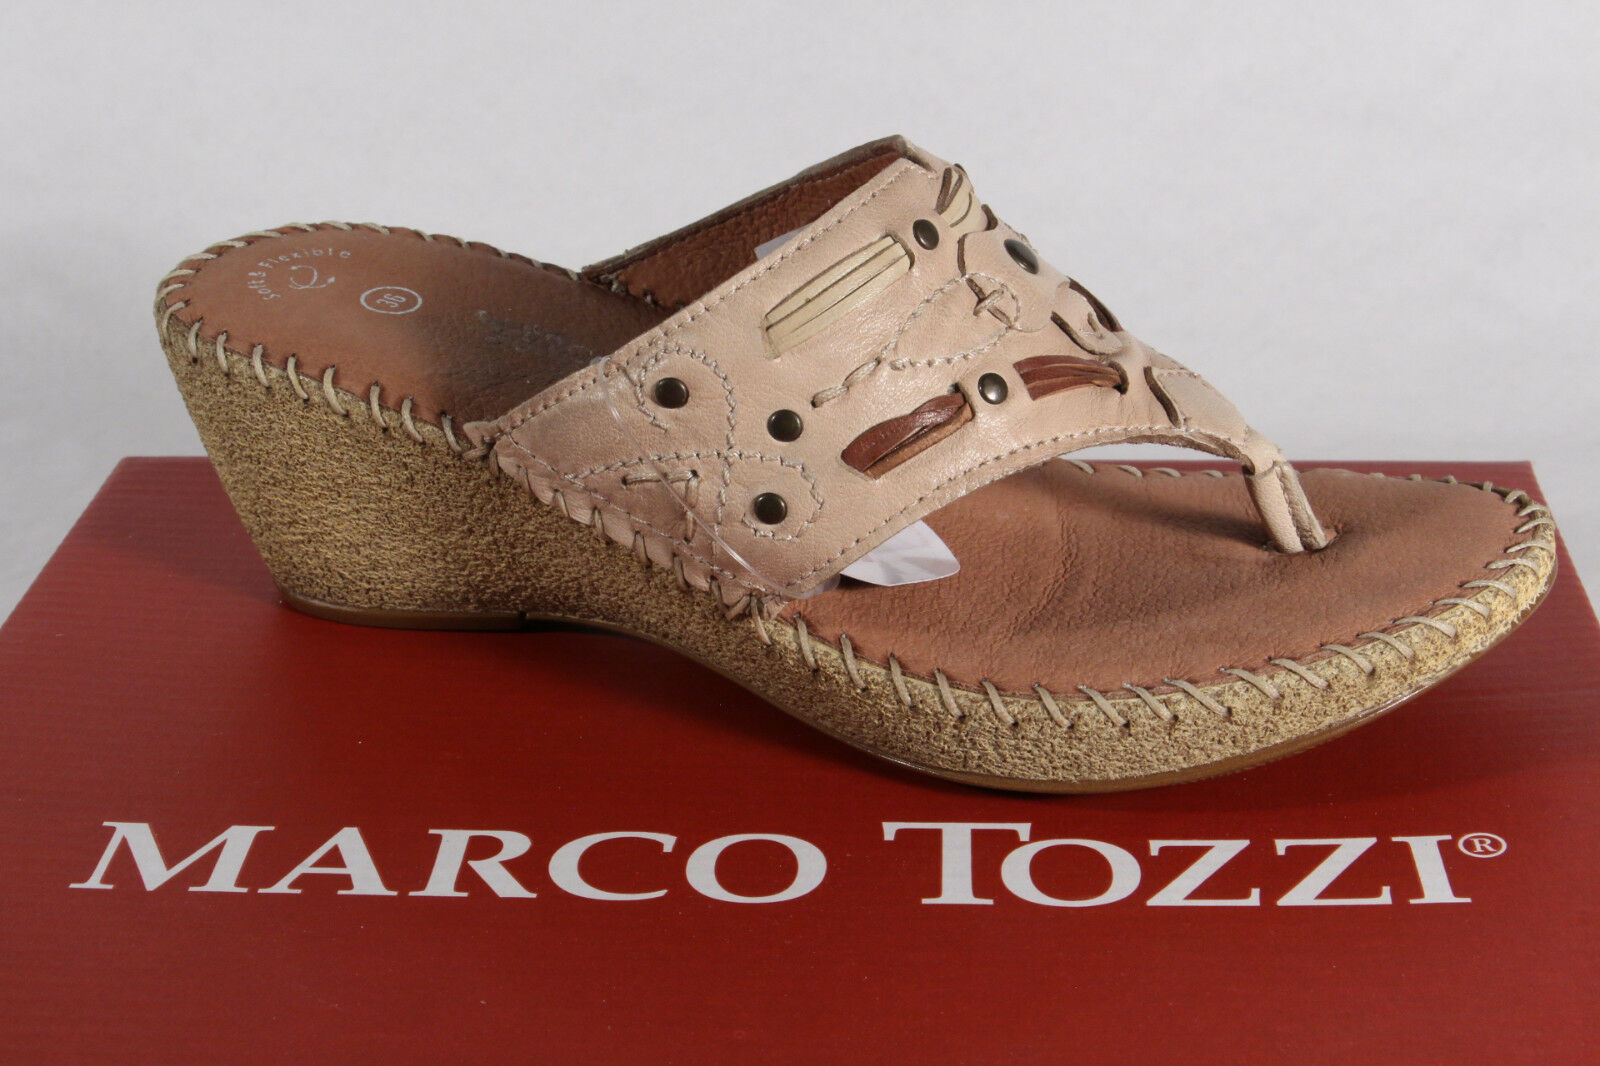 Marco Tozzi Toe Thong Mules Mules Real Leather Beige New